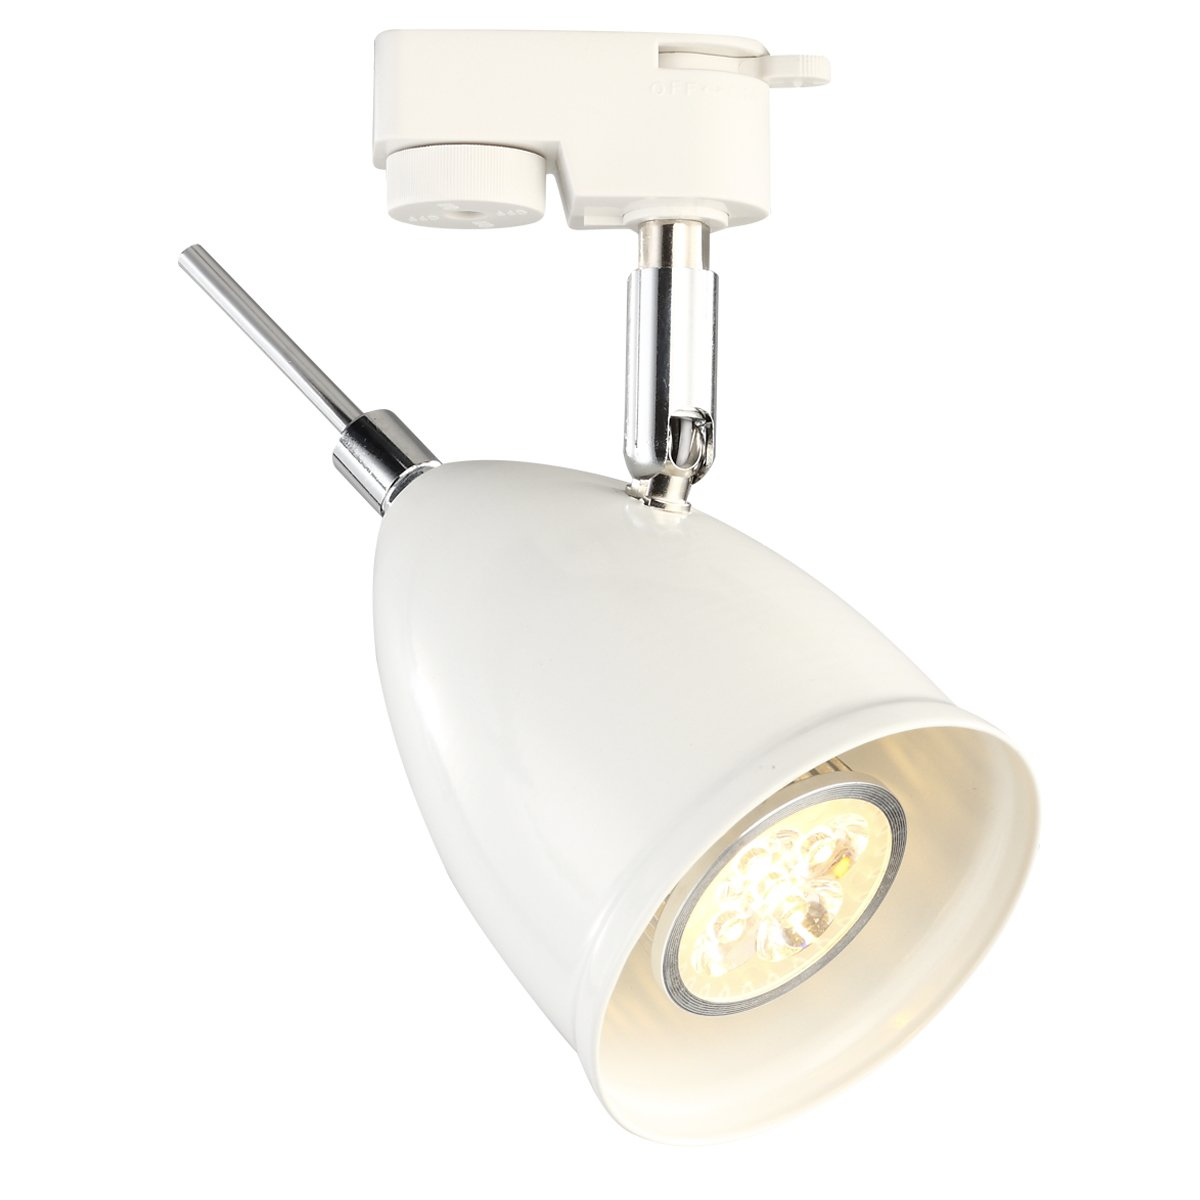 Track Lighting LED bulbs fixtures - heads kits outlet adapter Aluminum for Retail Store Gallery Display Product Pesidential Hotel Clothes Shop Lighting ,wyg6019